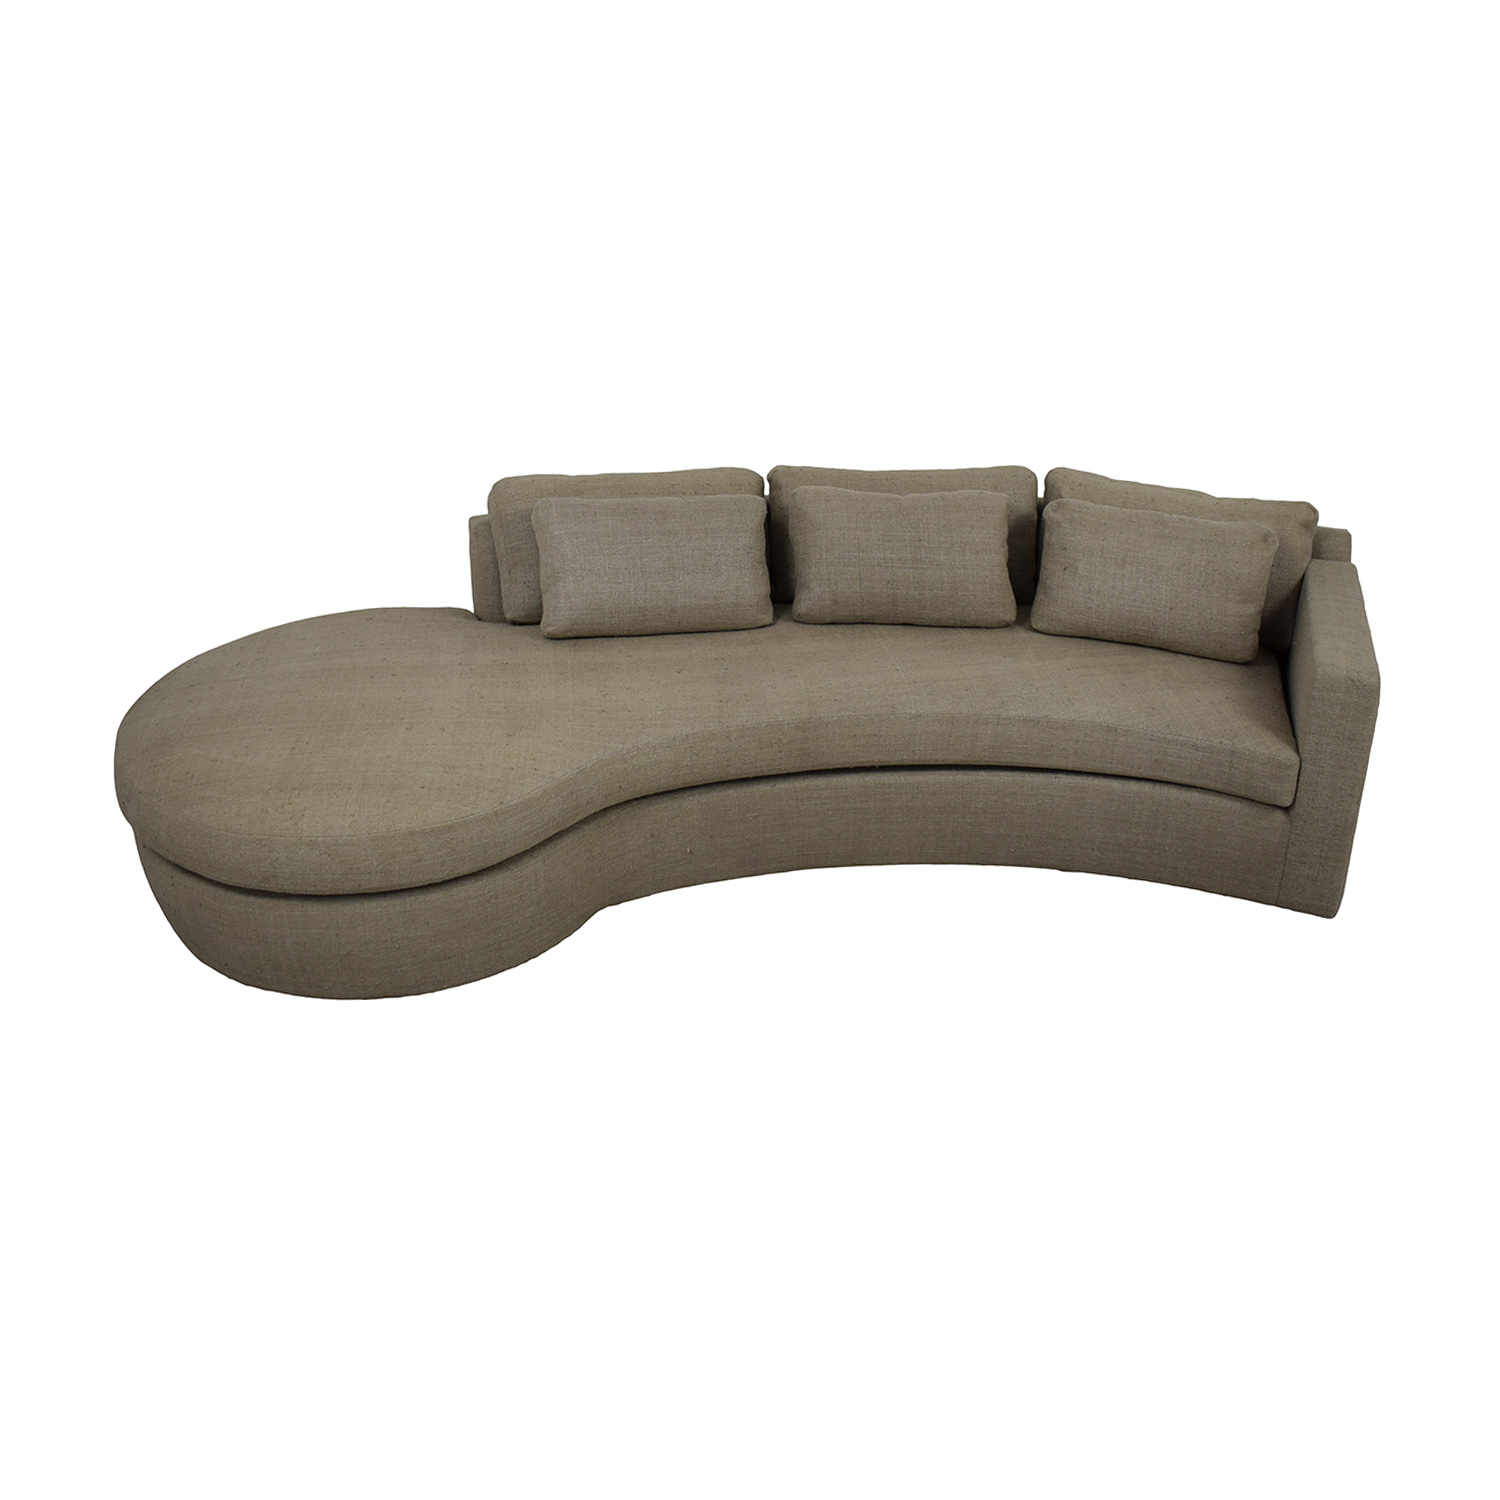 Furniture Masters Furniture Masters Serpentine-Style Grey Sofa on sale